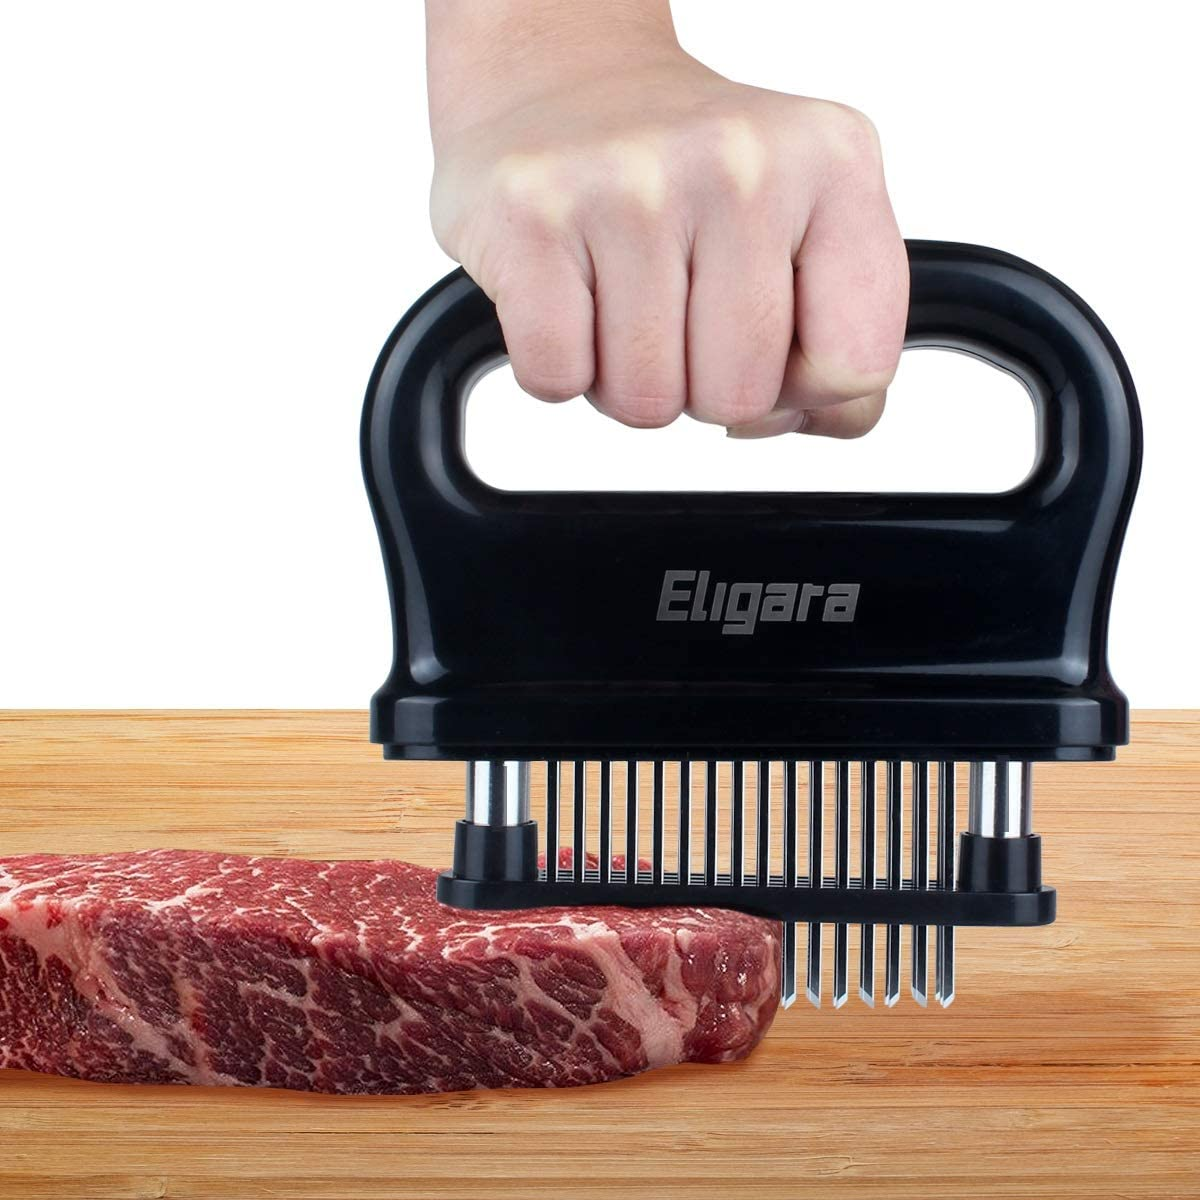 online shopping Eligara Meat Tenderizer with 48 Steel Needle Safety and trust Blade Stainless S